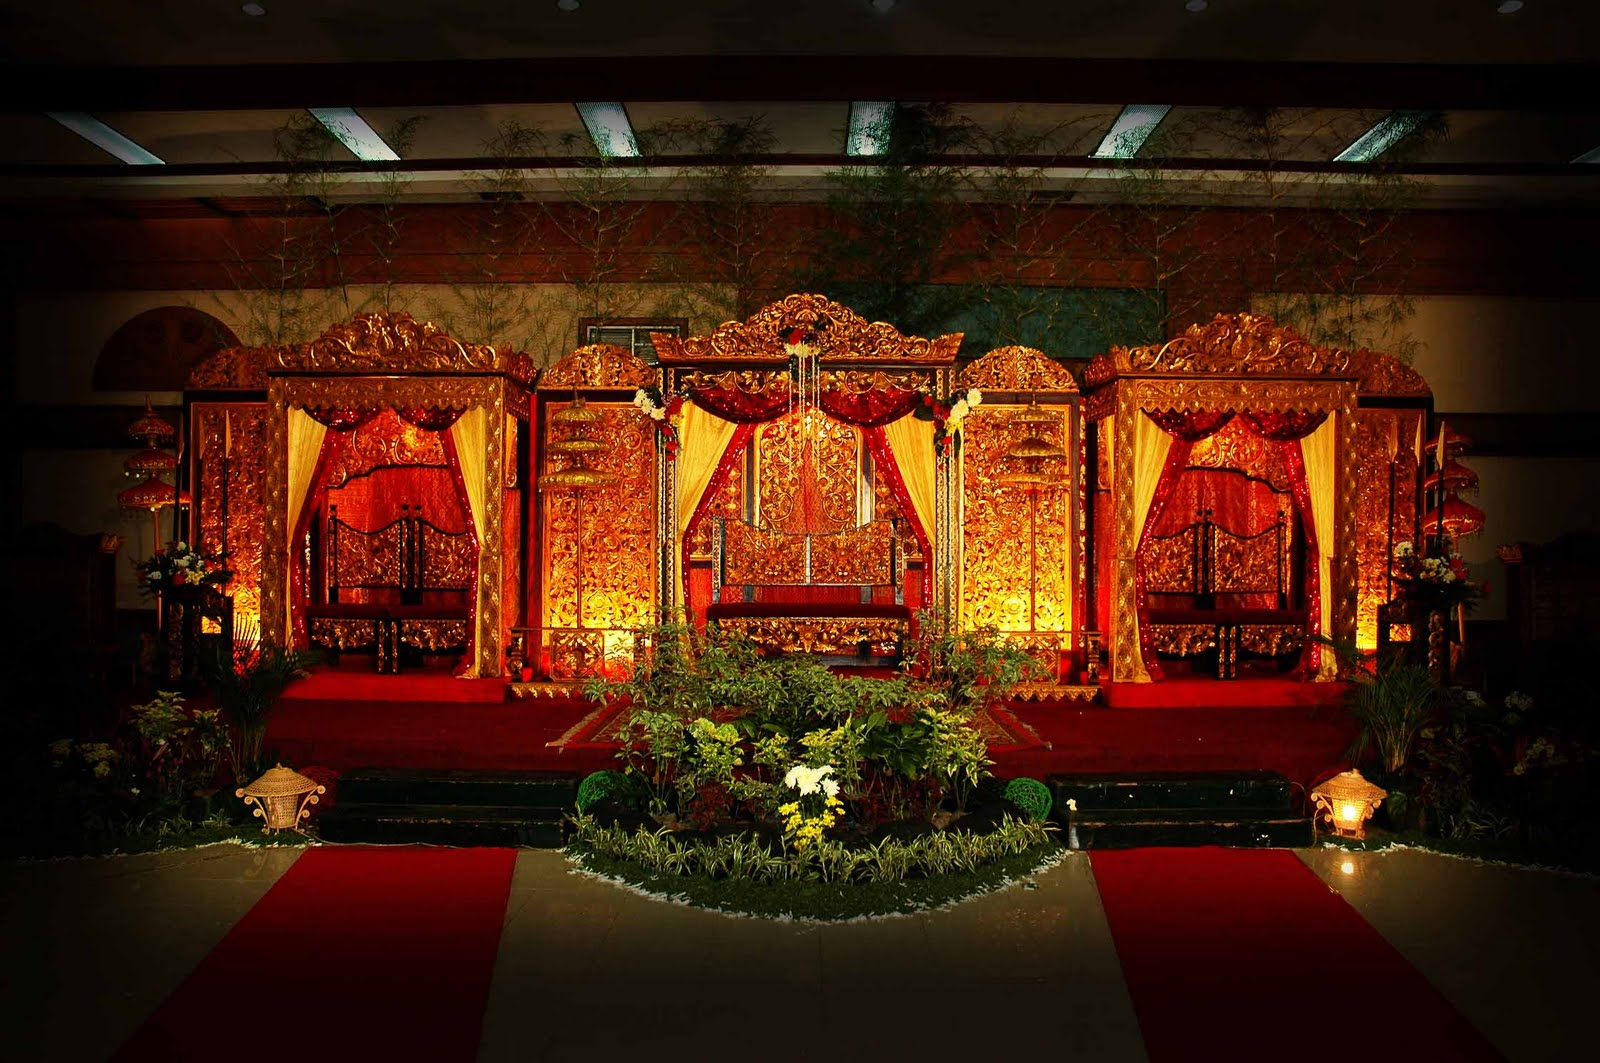 Wedding decoration images hd  dr sneha drsneha on Pinterest